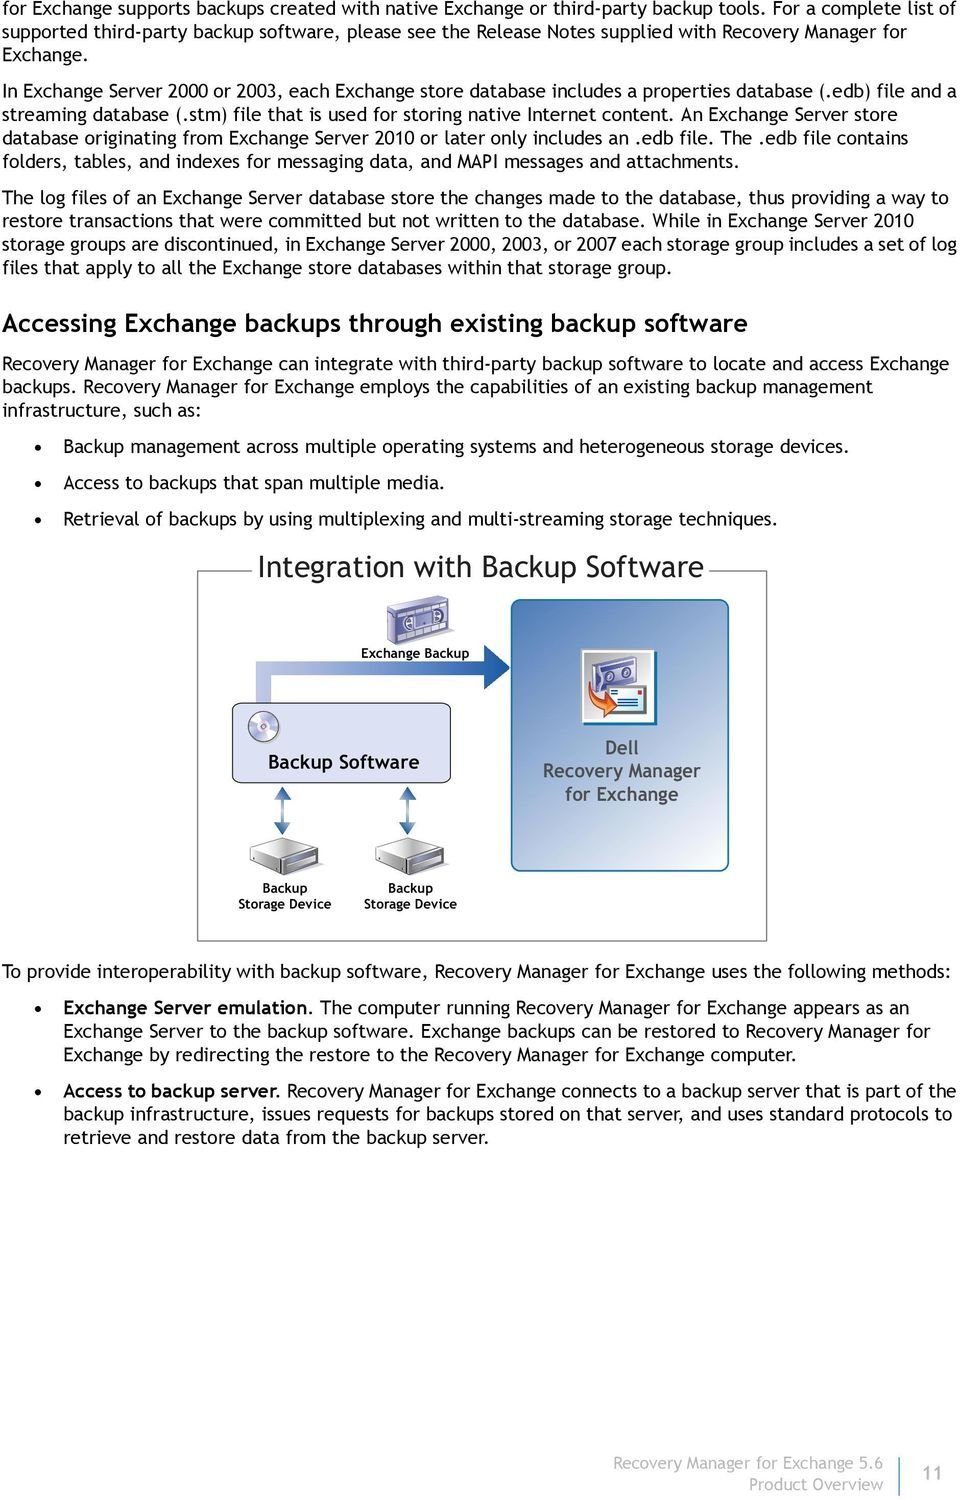 In Exchange Server 2000 or 2003, each Exchange store database includes a properties database (.edb) file and a streaming database (.stm) file that is used for storing native Internet content.